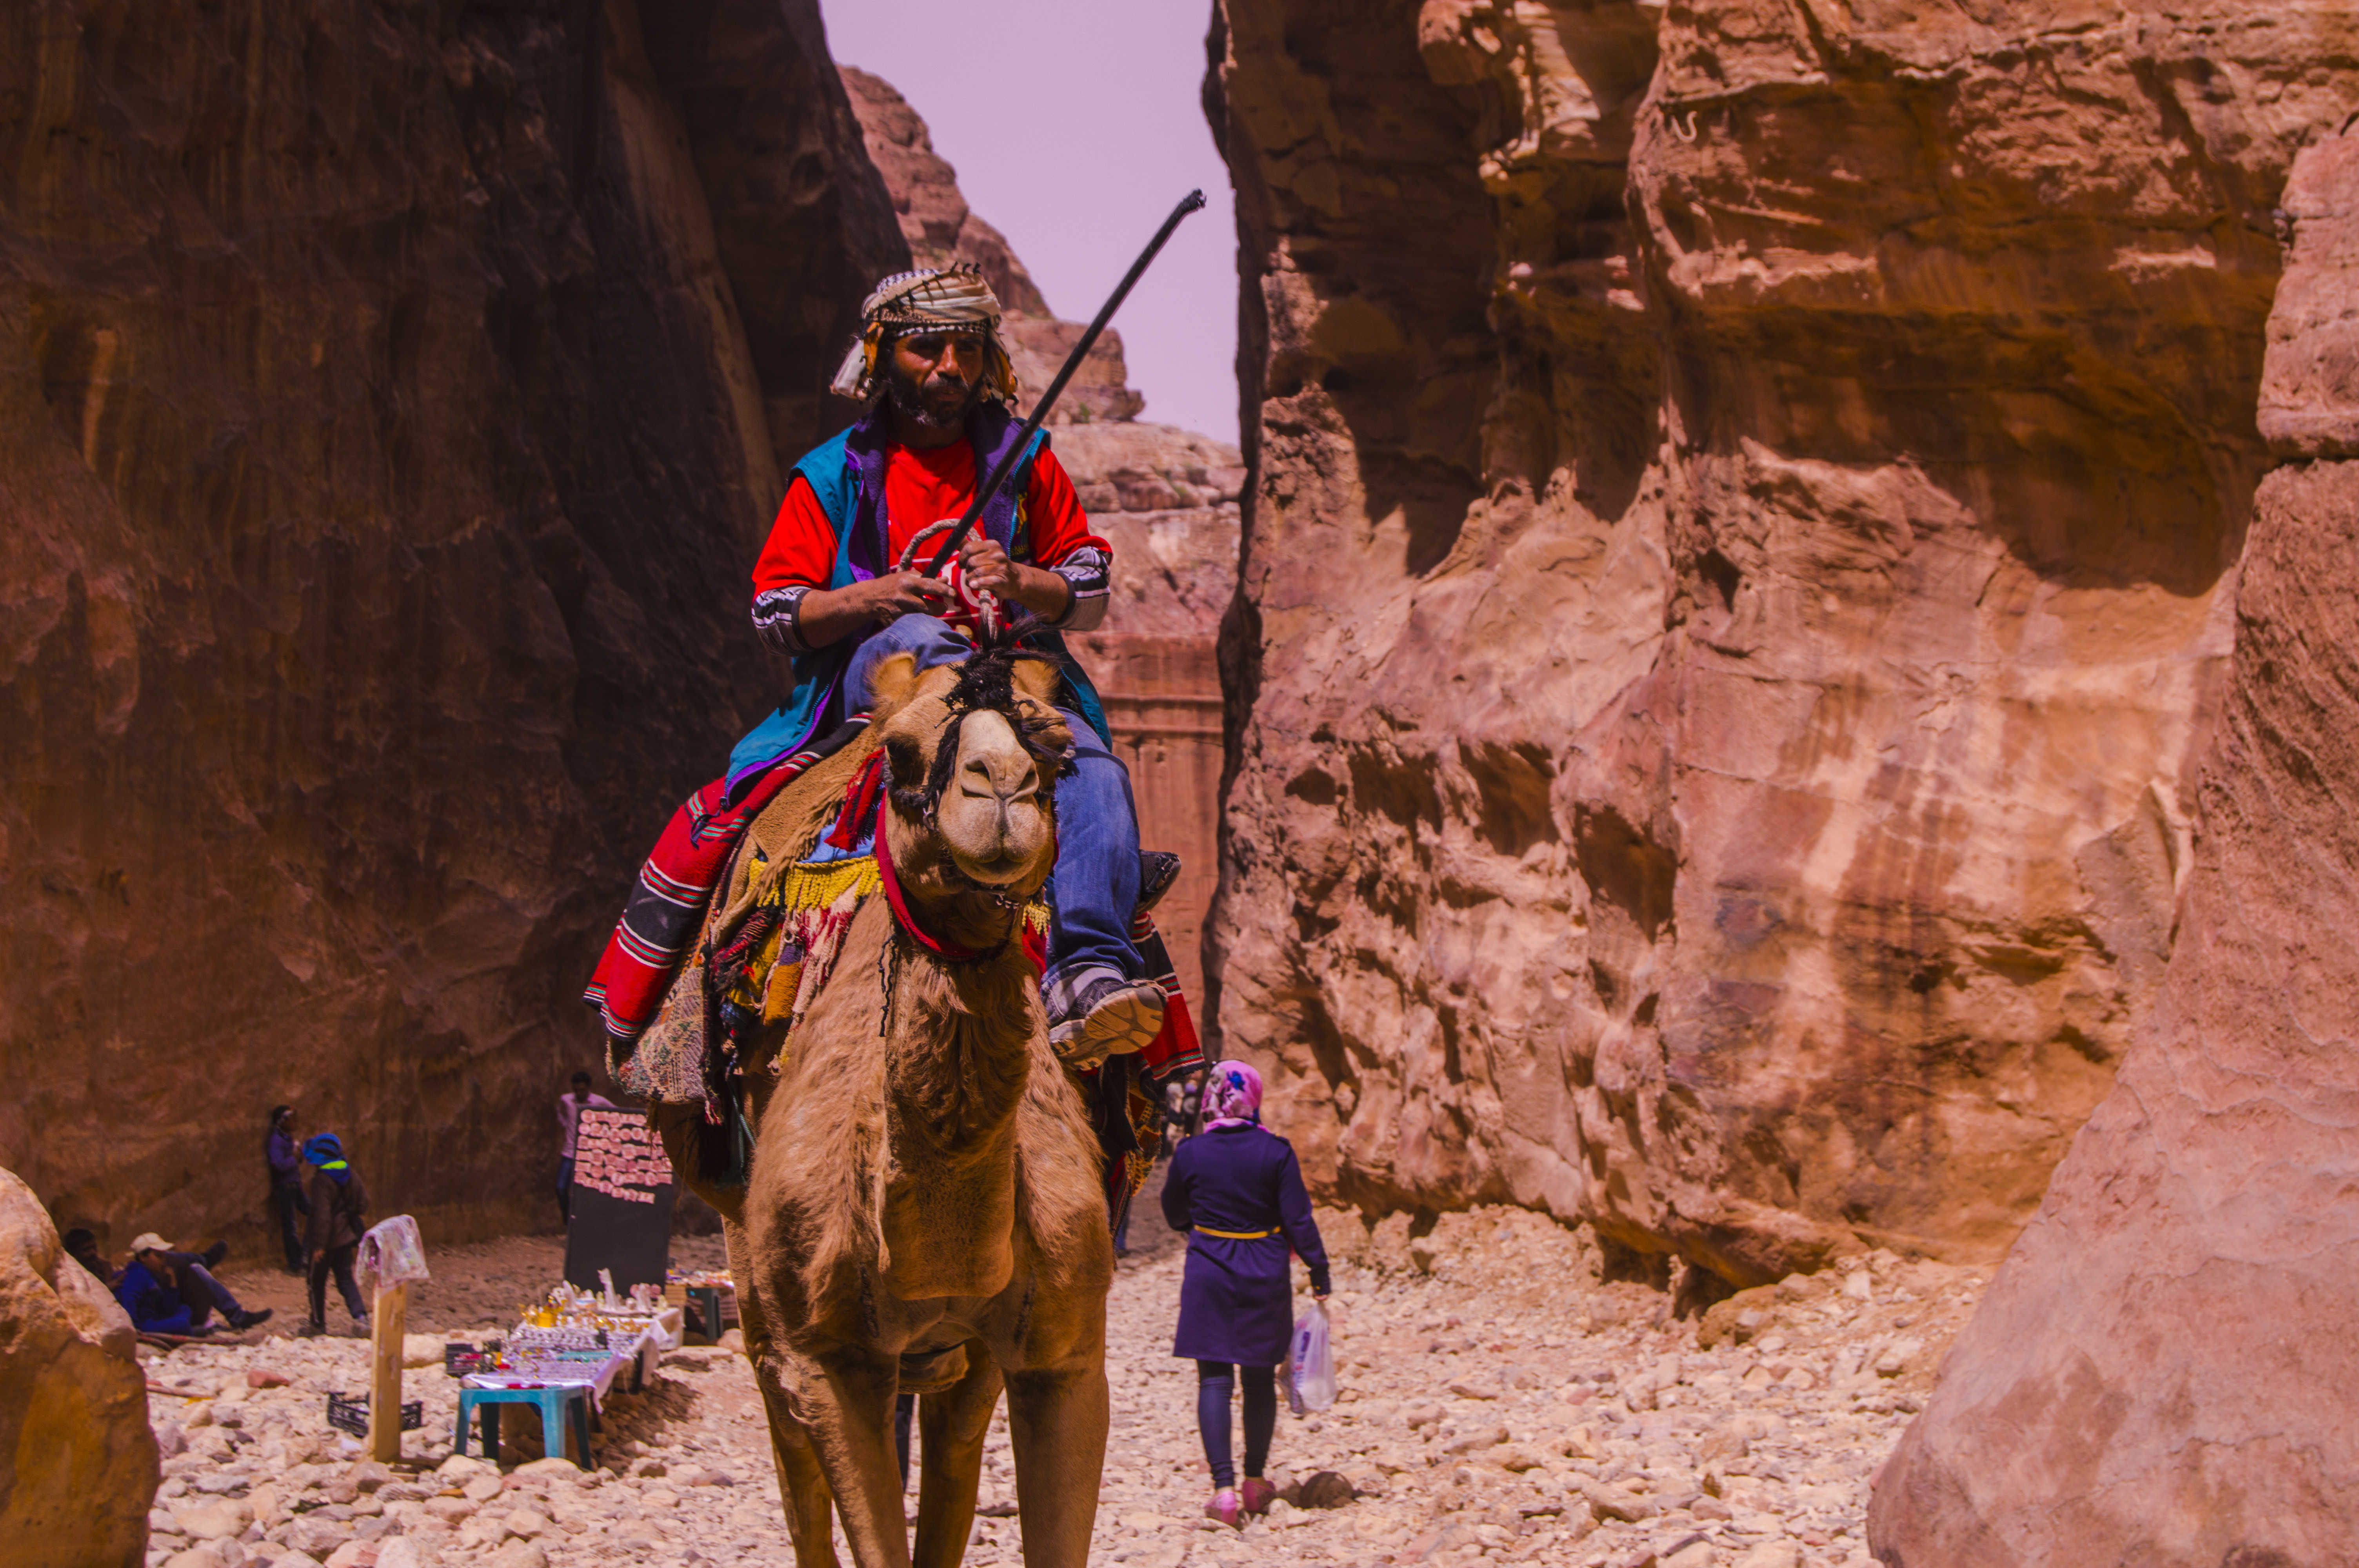 Camel Rider by Abdullah Mouslli - People and Culture Finalist